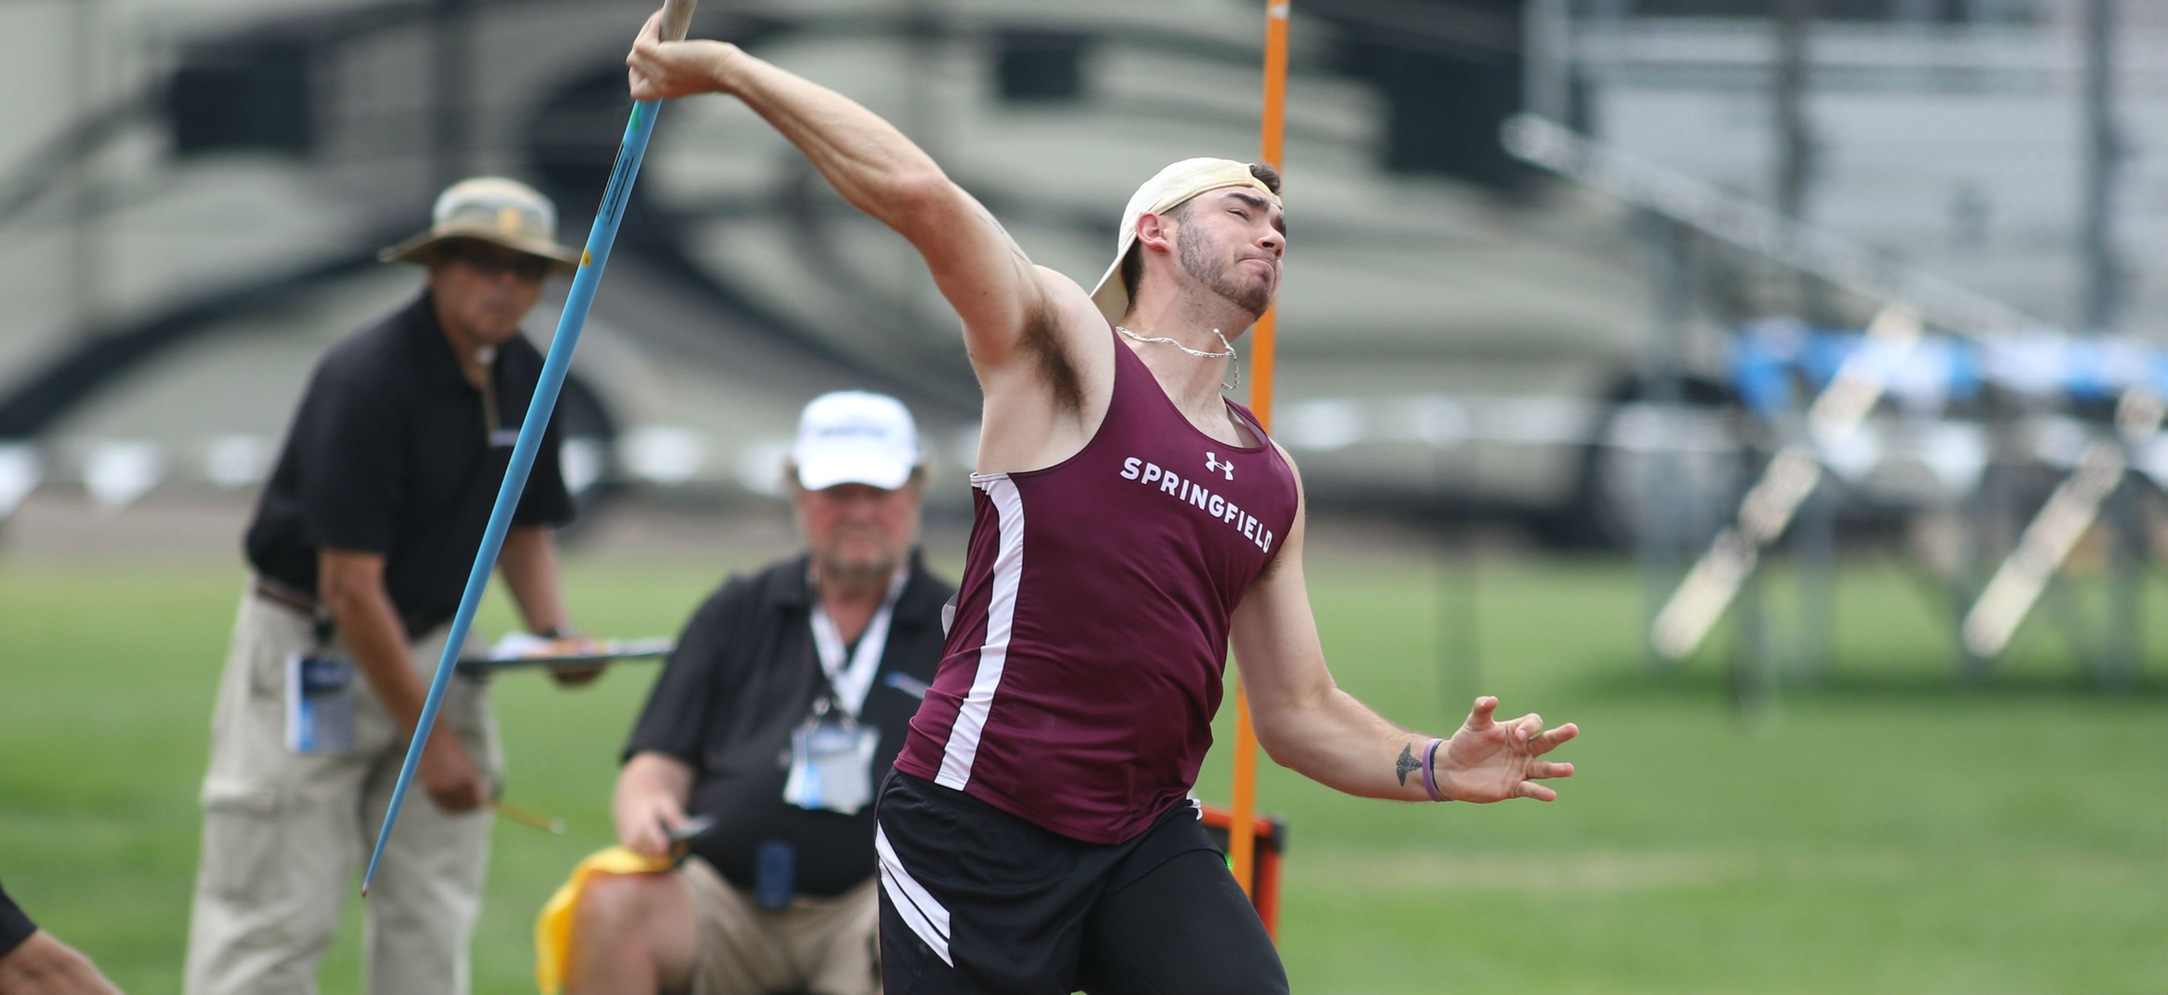 DeVaux Earns All-America Honors in Javelin Throw at NCAA Division III Outdoor Track and Field National Championships